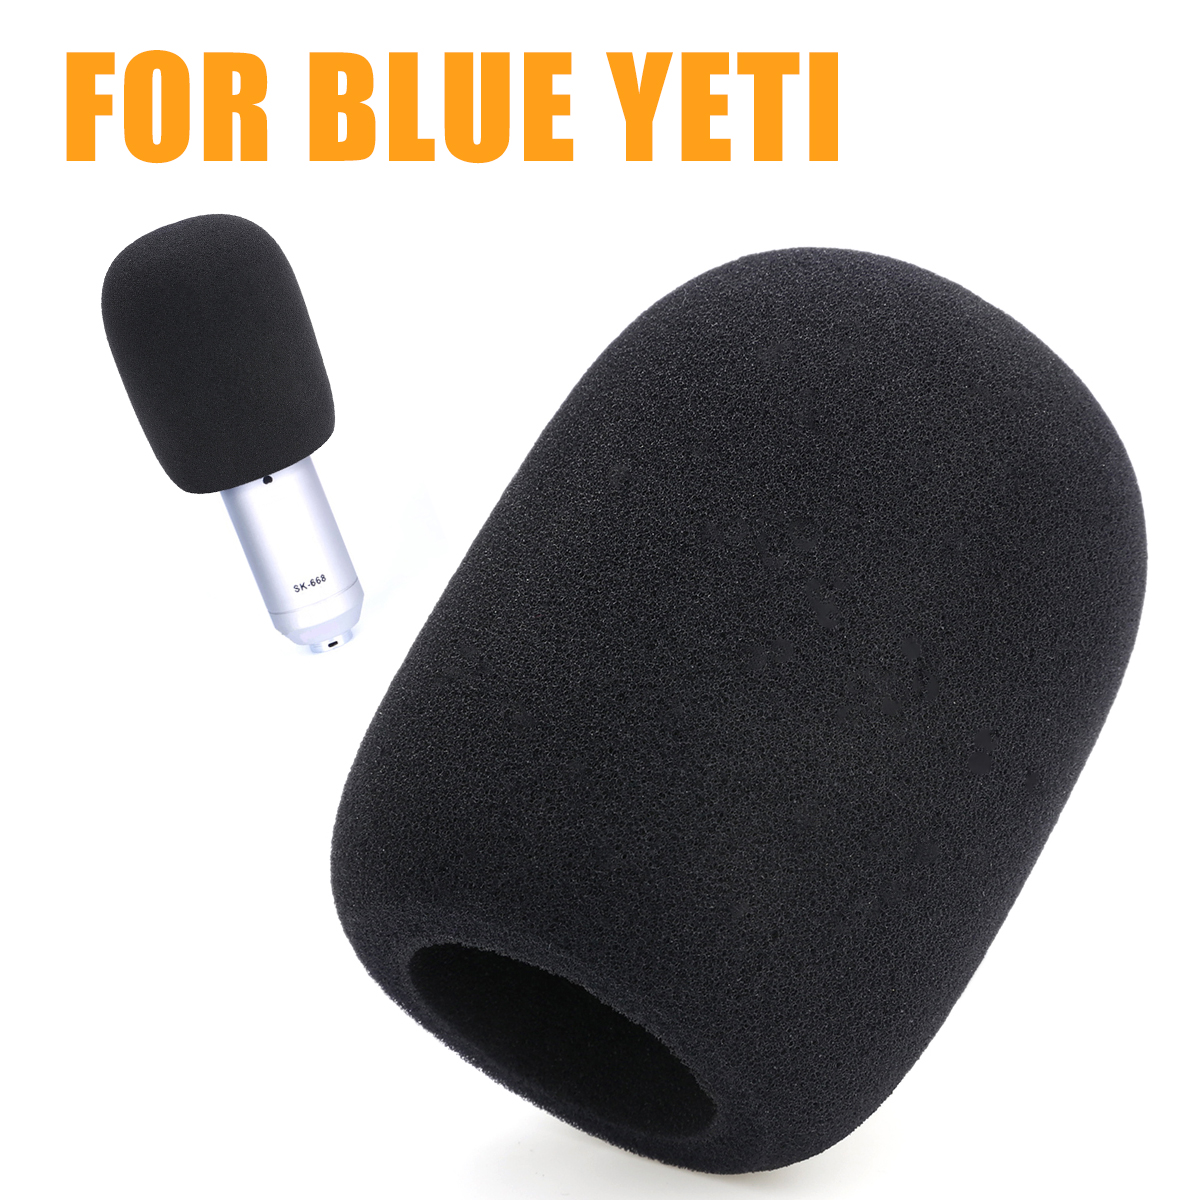 Mayitr 1pc Windscreen Microphone Windshield Sponge Mic Ball Shape Foam Cover For Blue Yeti Condenser Microphone